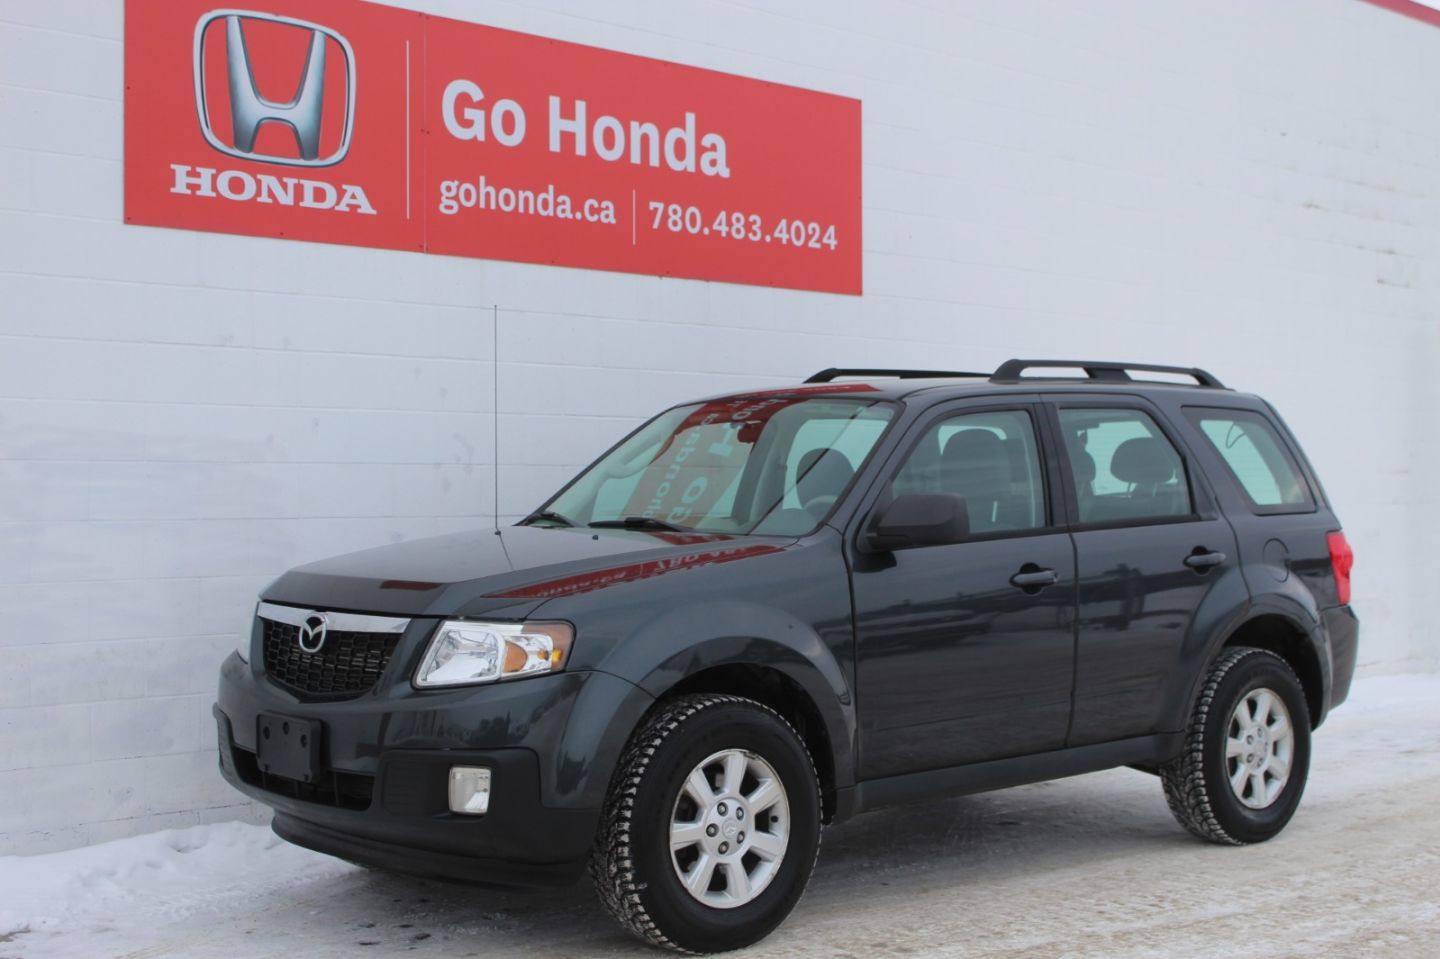 2009 Mazda Tribute GX I4 for sale in Edmonton, Alberta